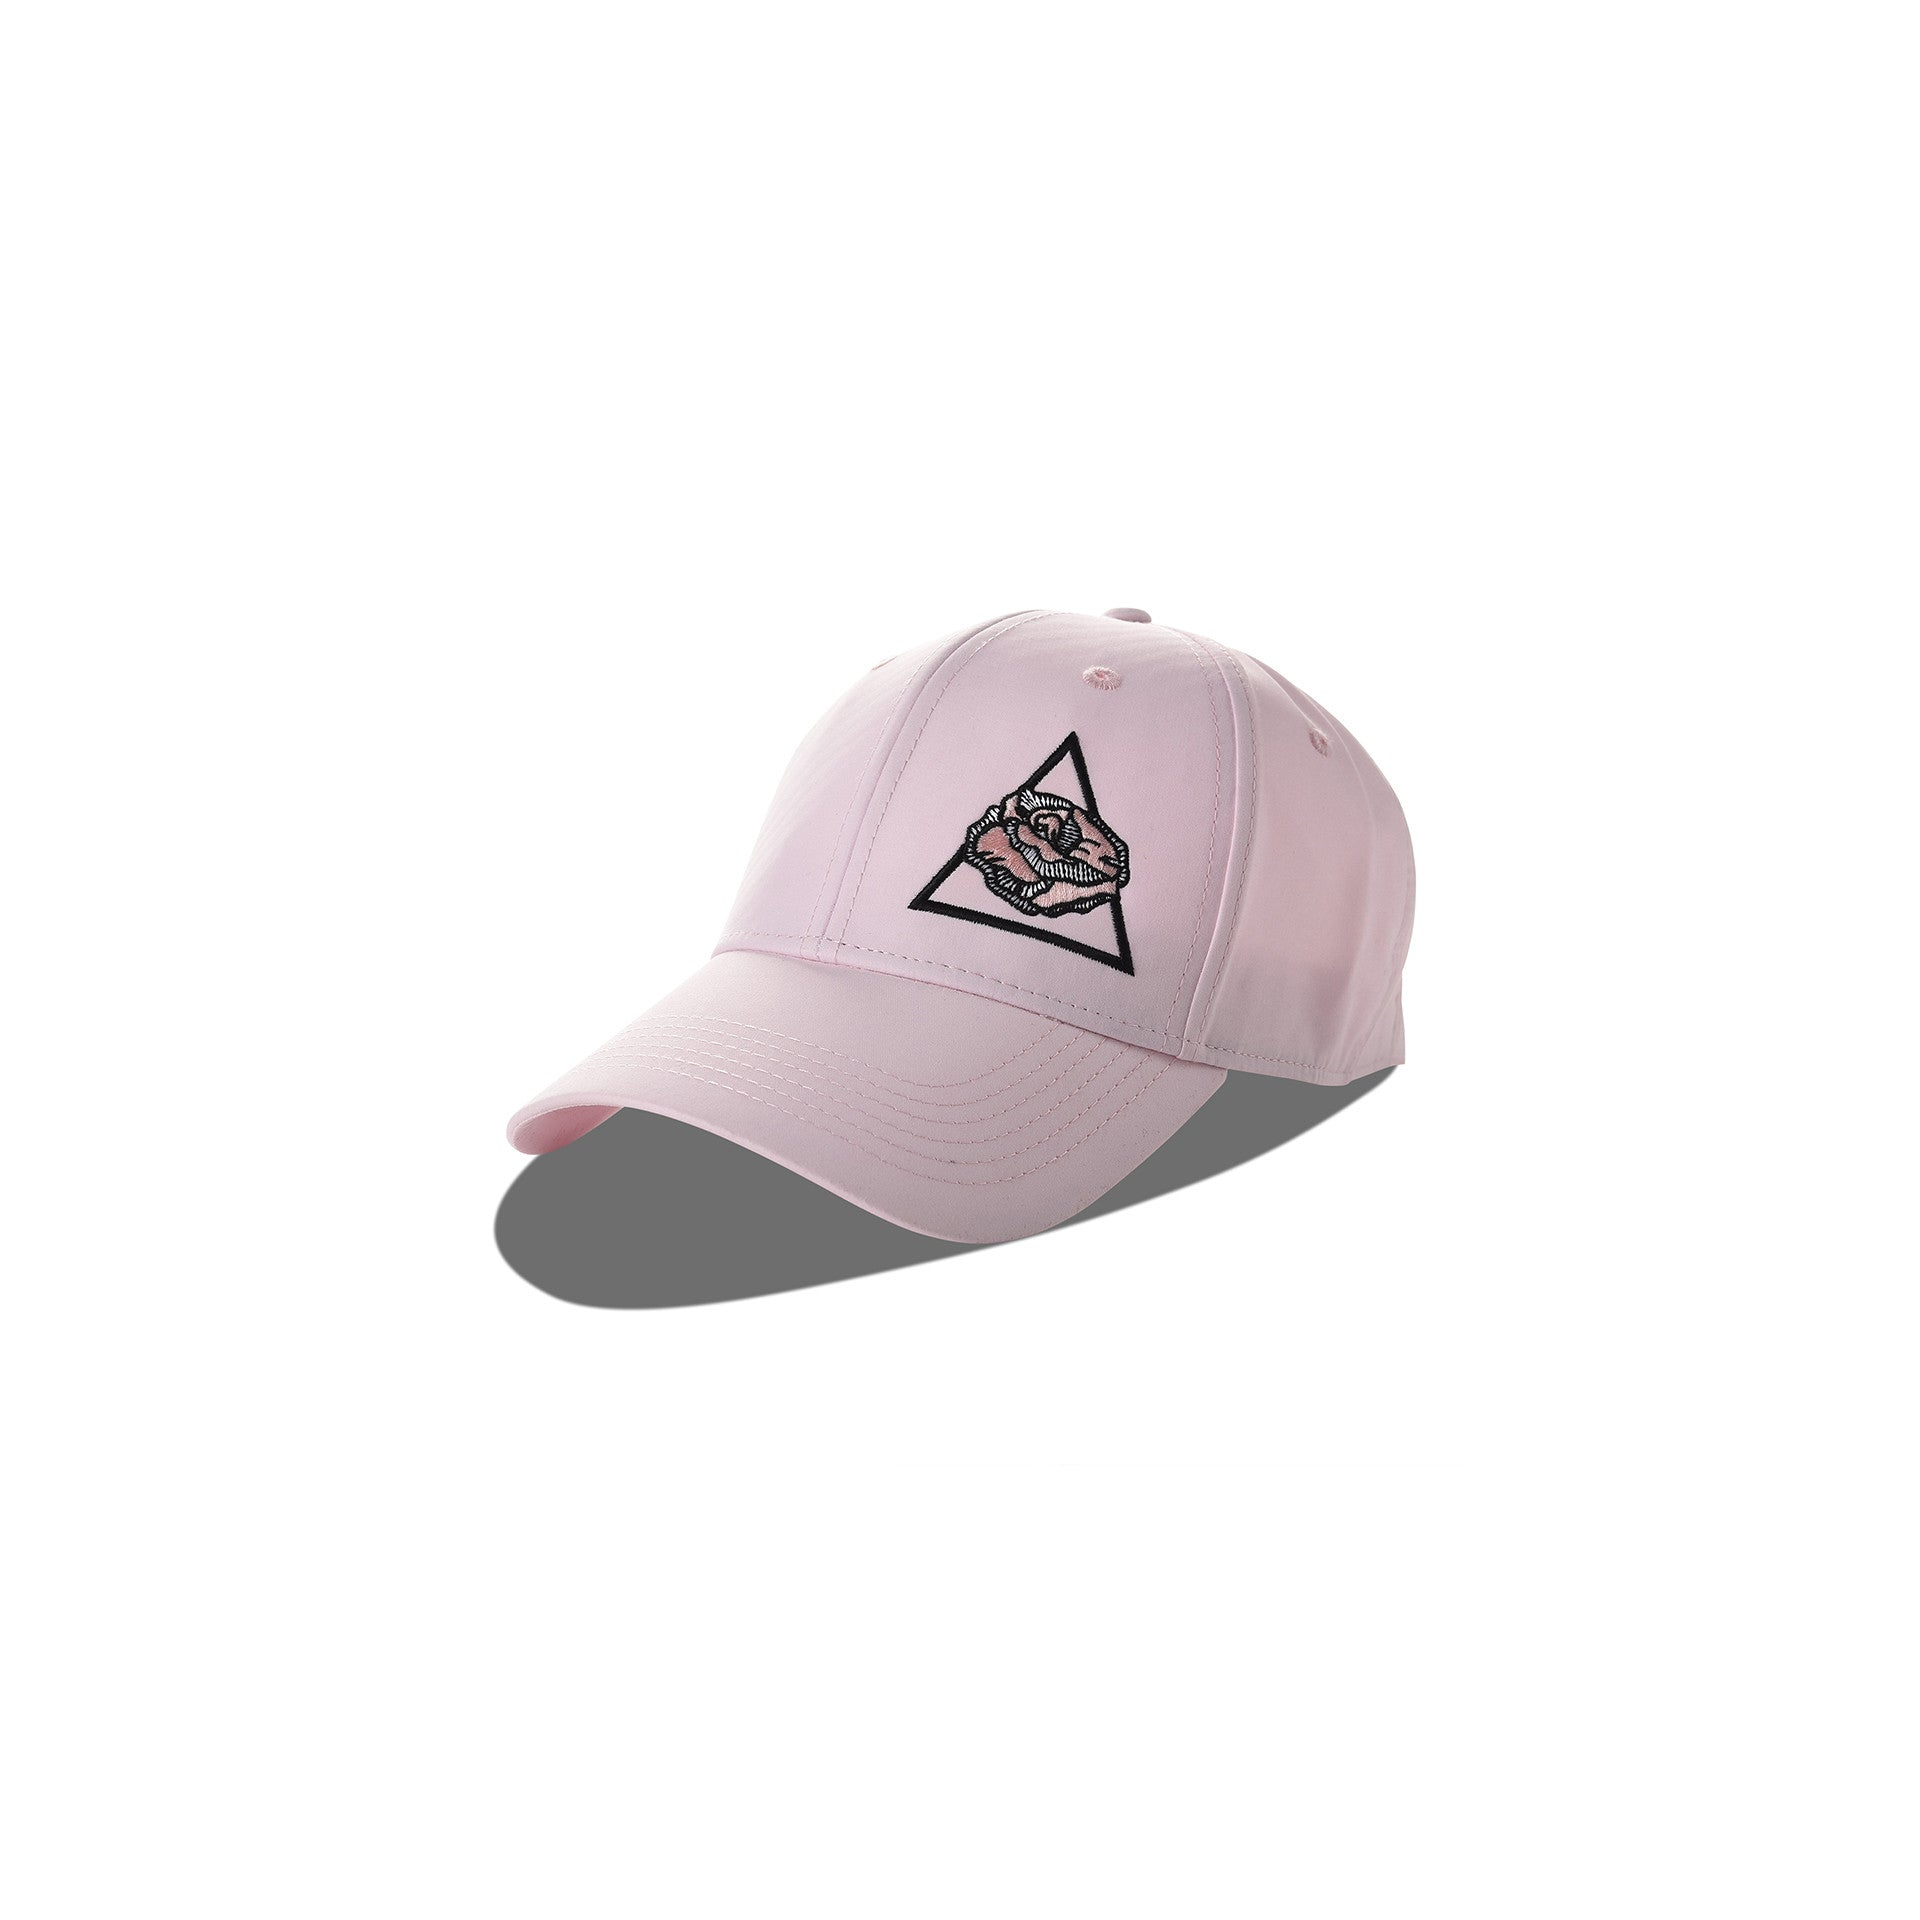 Luna Blanche LB Rose Hand Drawn Cap